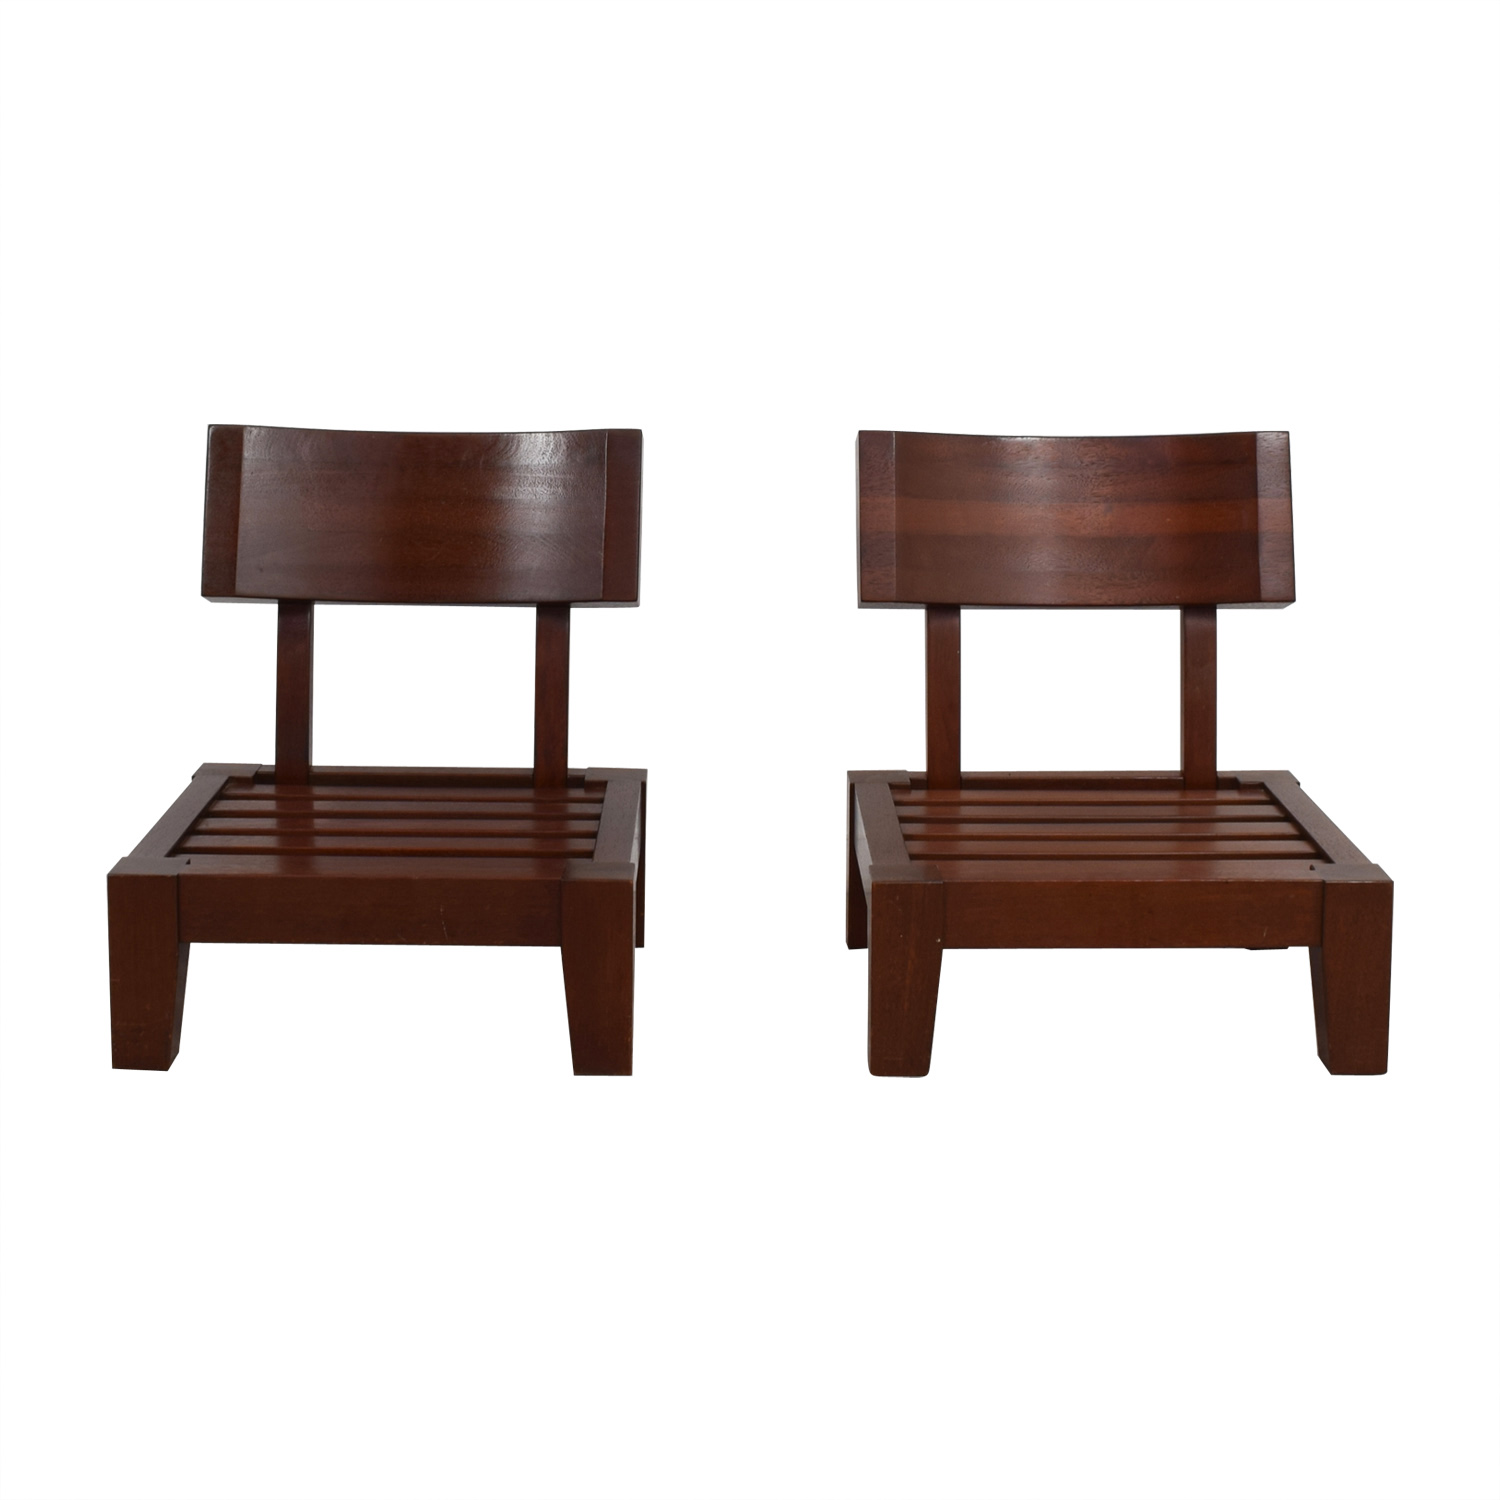 Mahogany Wood Sitting Chairs